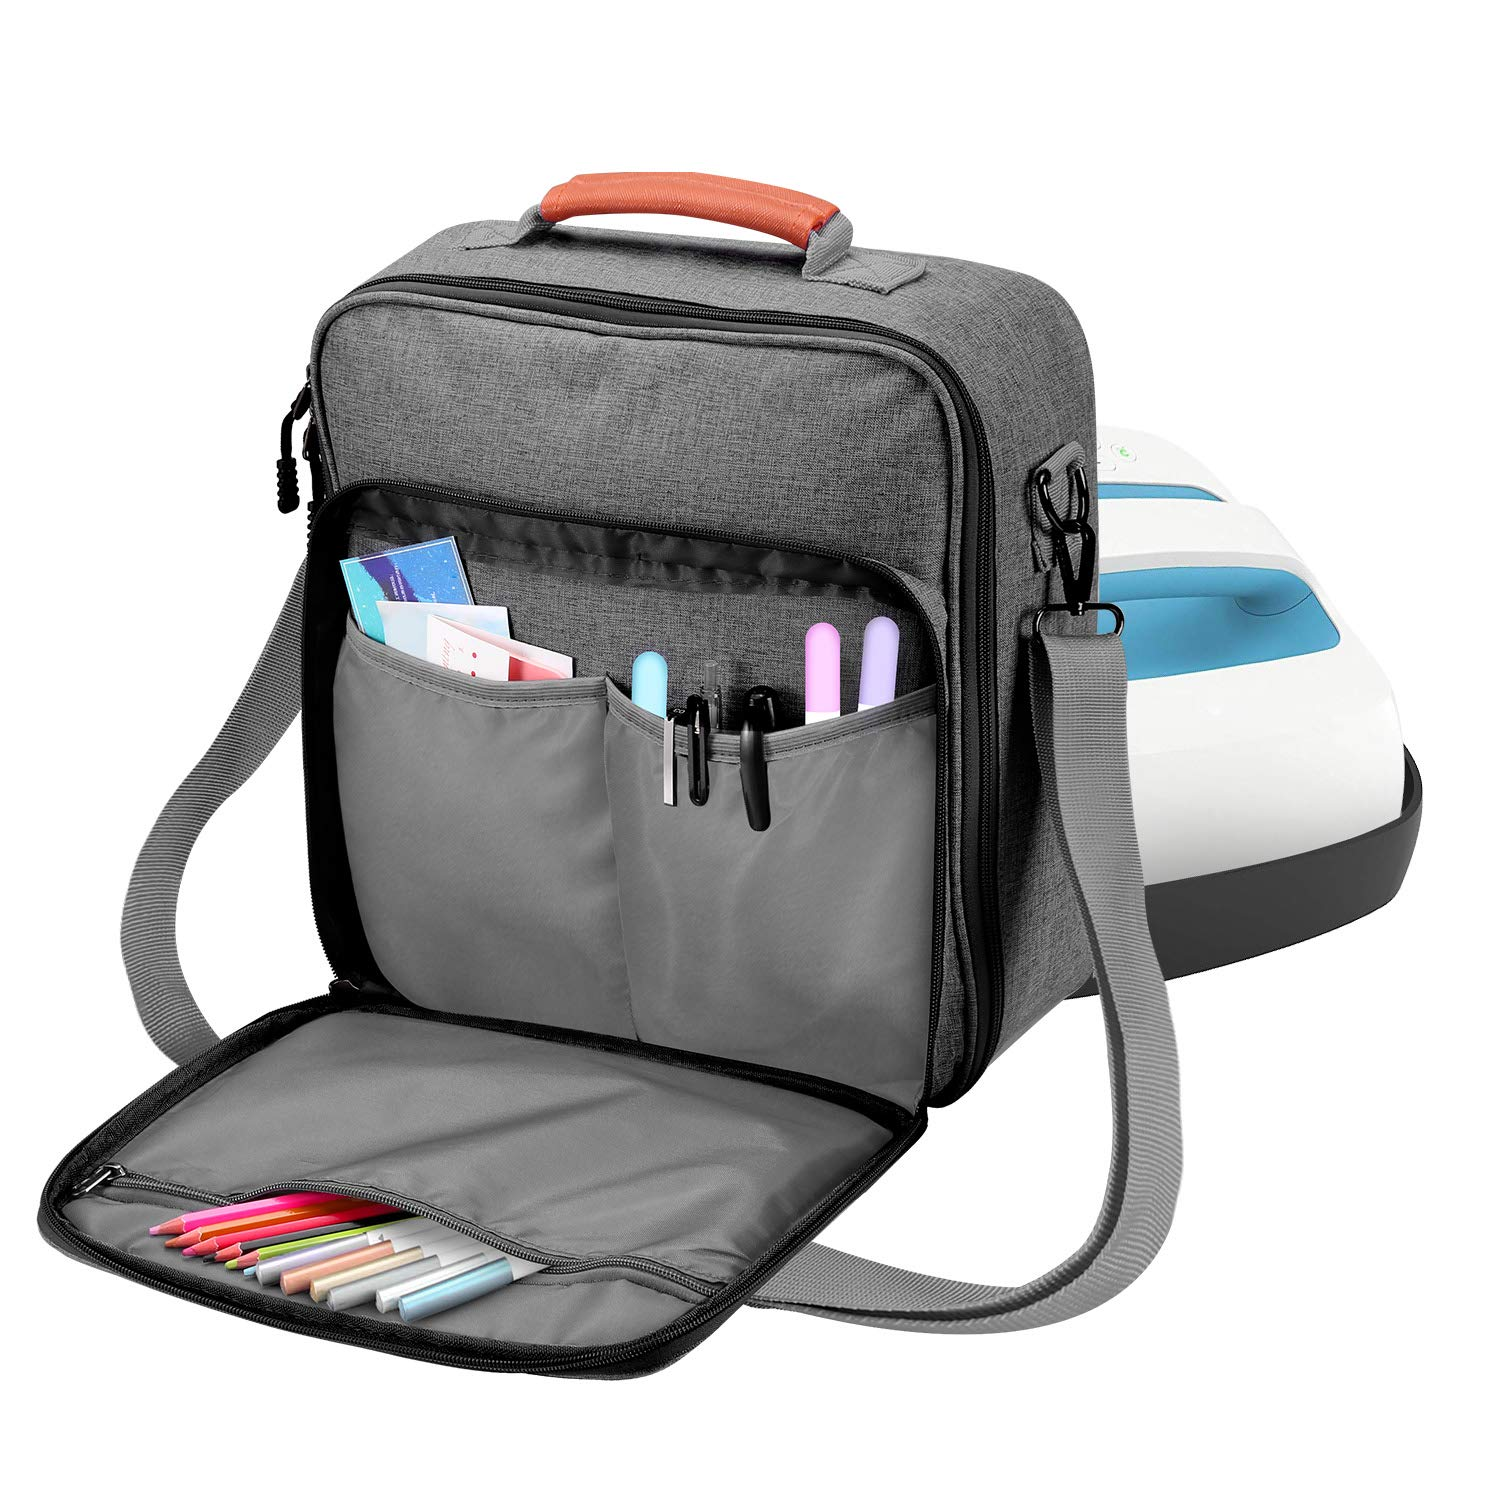 Carrying Case for Easy Press - Carrying Bag Compatible with Cricut Easy Press (9 inches x 9 inches), Tote Bag Cricut Accessories (Grey) by Farochy